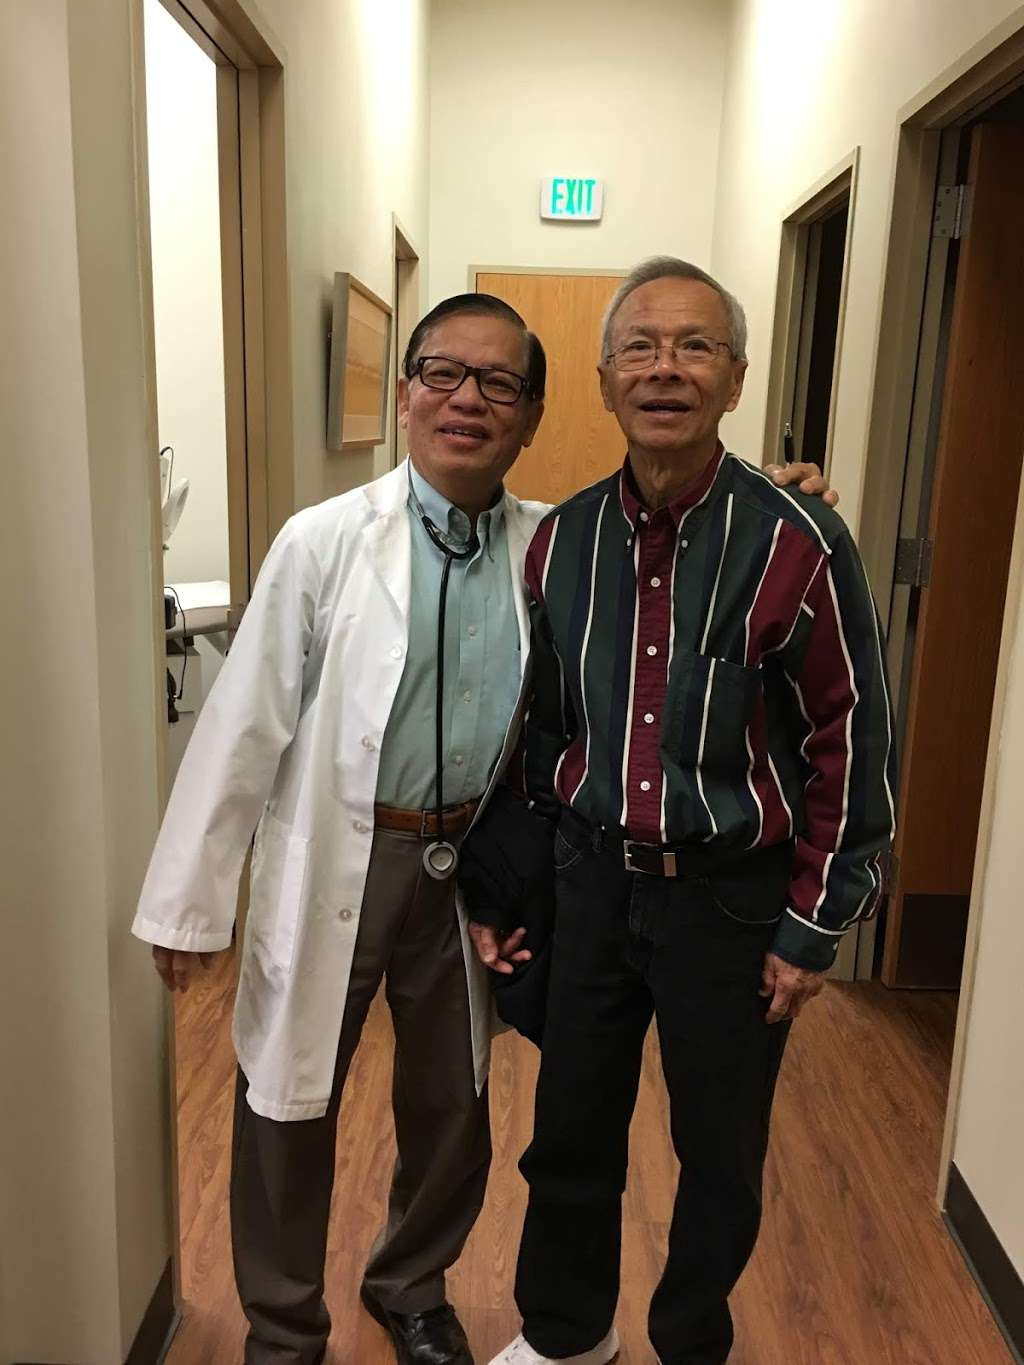 Northchase Family Practice Clinic - health  | Photo 3 of 3 | Address: 11417 Veterans Memorial Dr, Houston, TX 77067, USA | Phone: (713) 955-3919